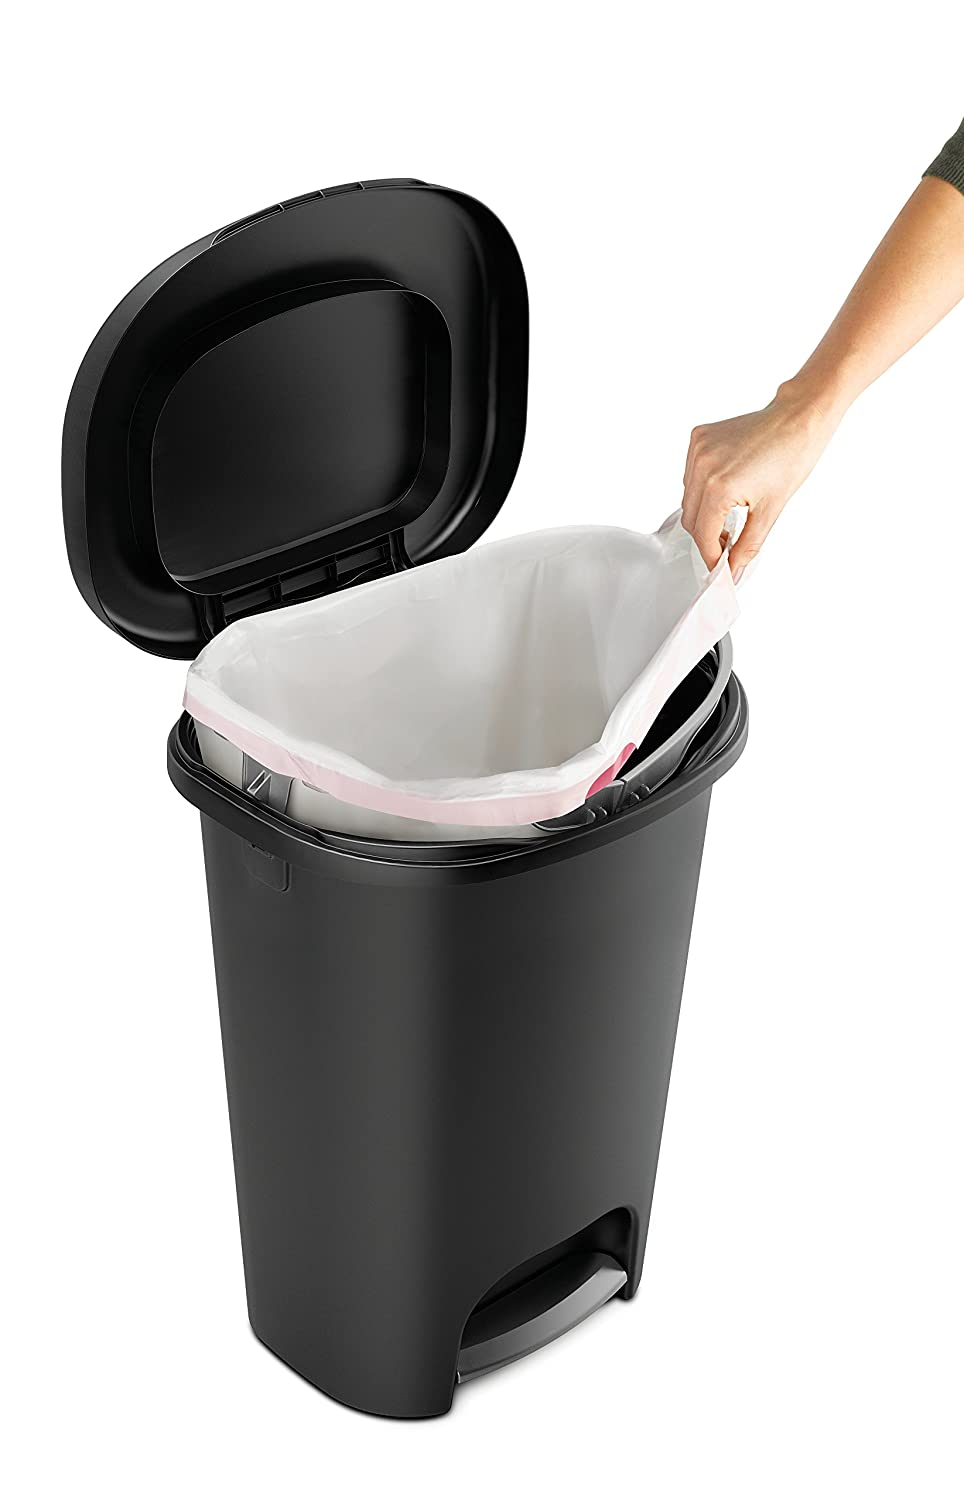 amazoncom rubbermaid stepon wastebasket 13 gallon black home u0026 kitchen